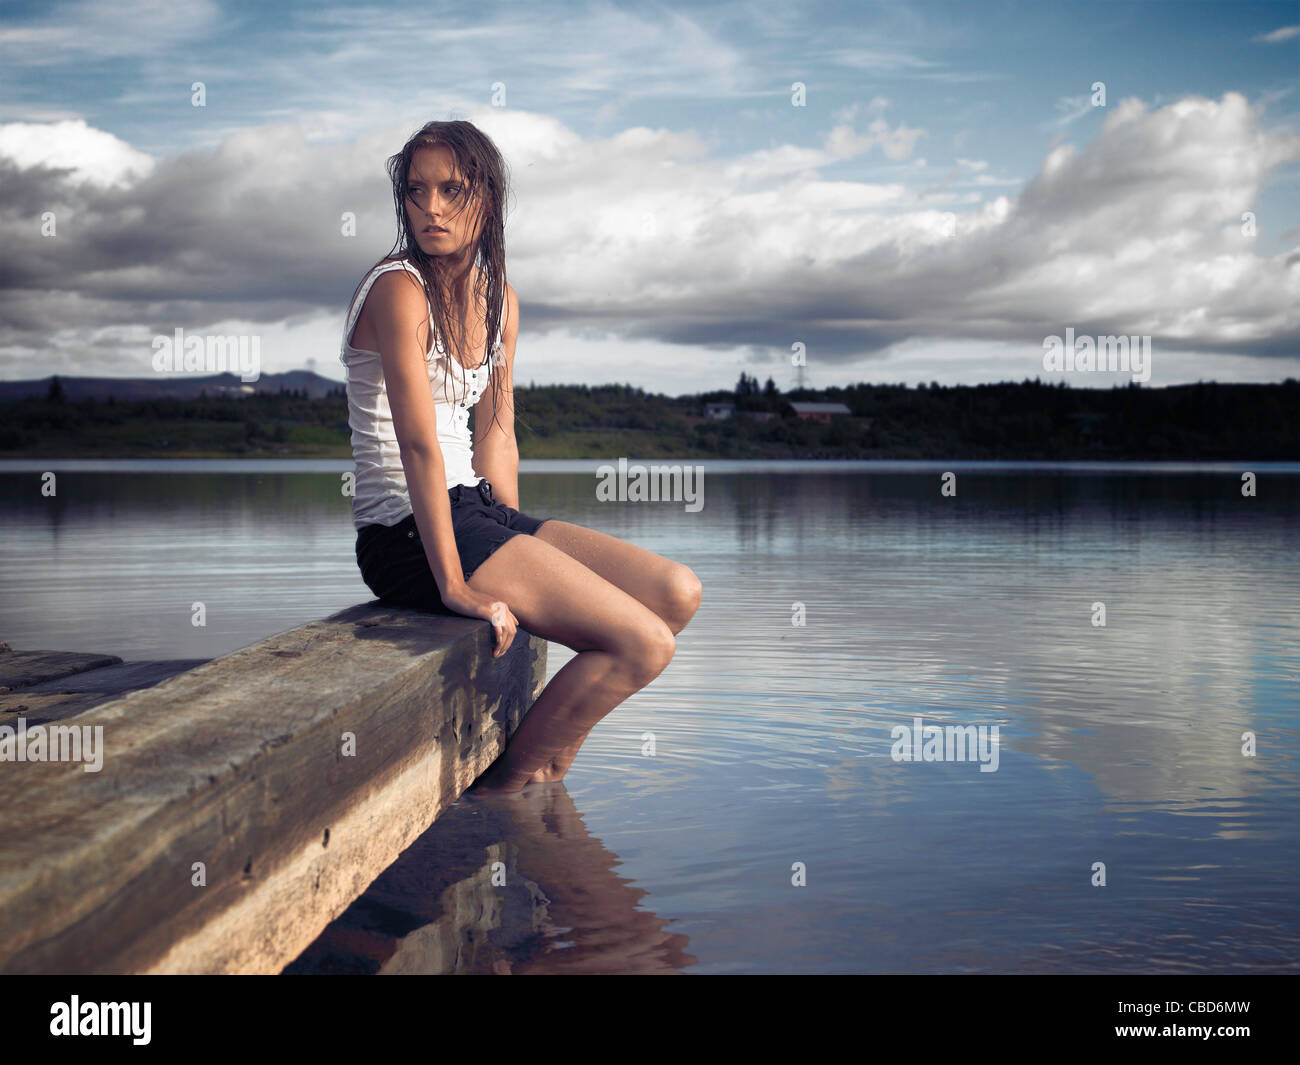 Woman sitting on dock by lake - Stock Image